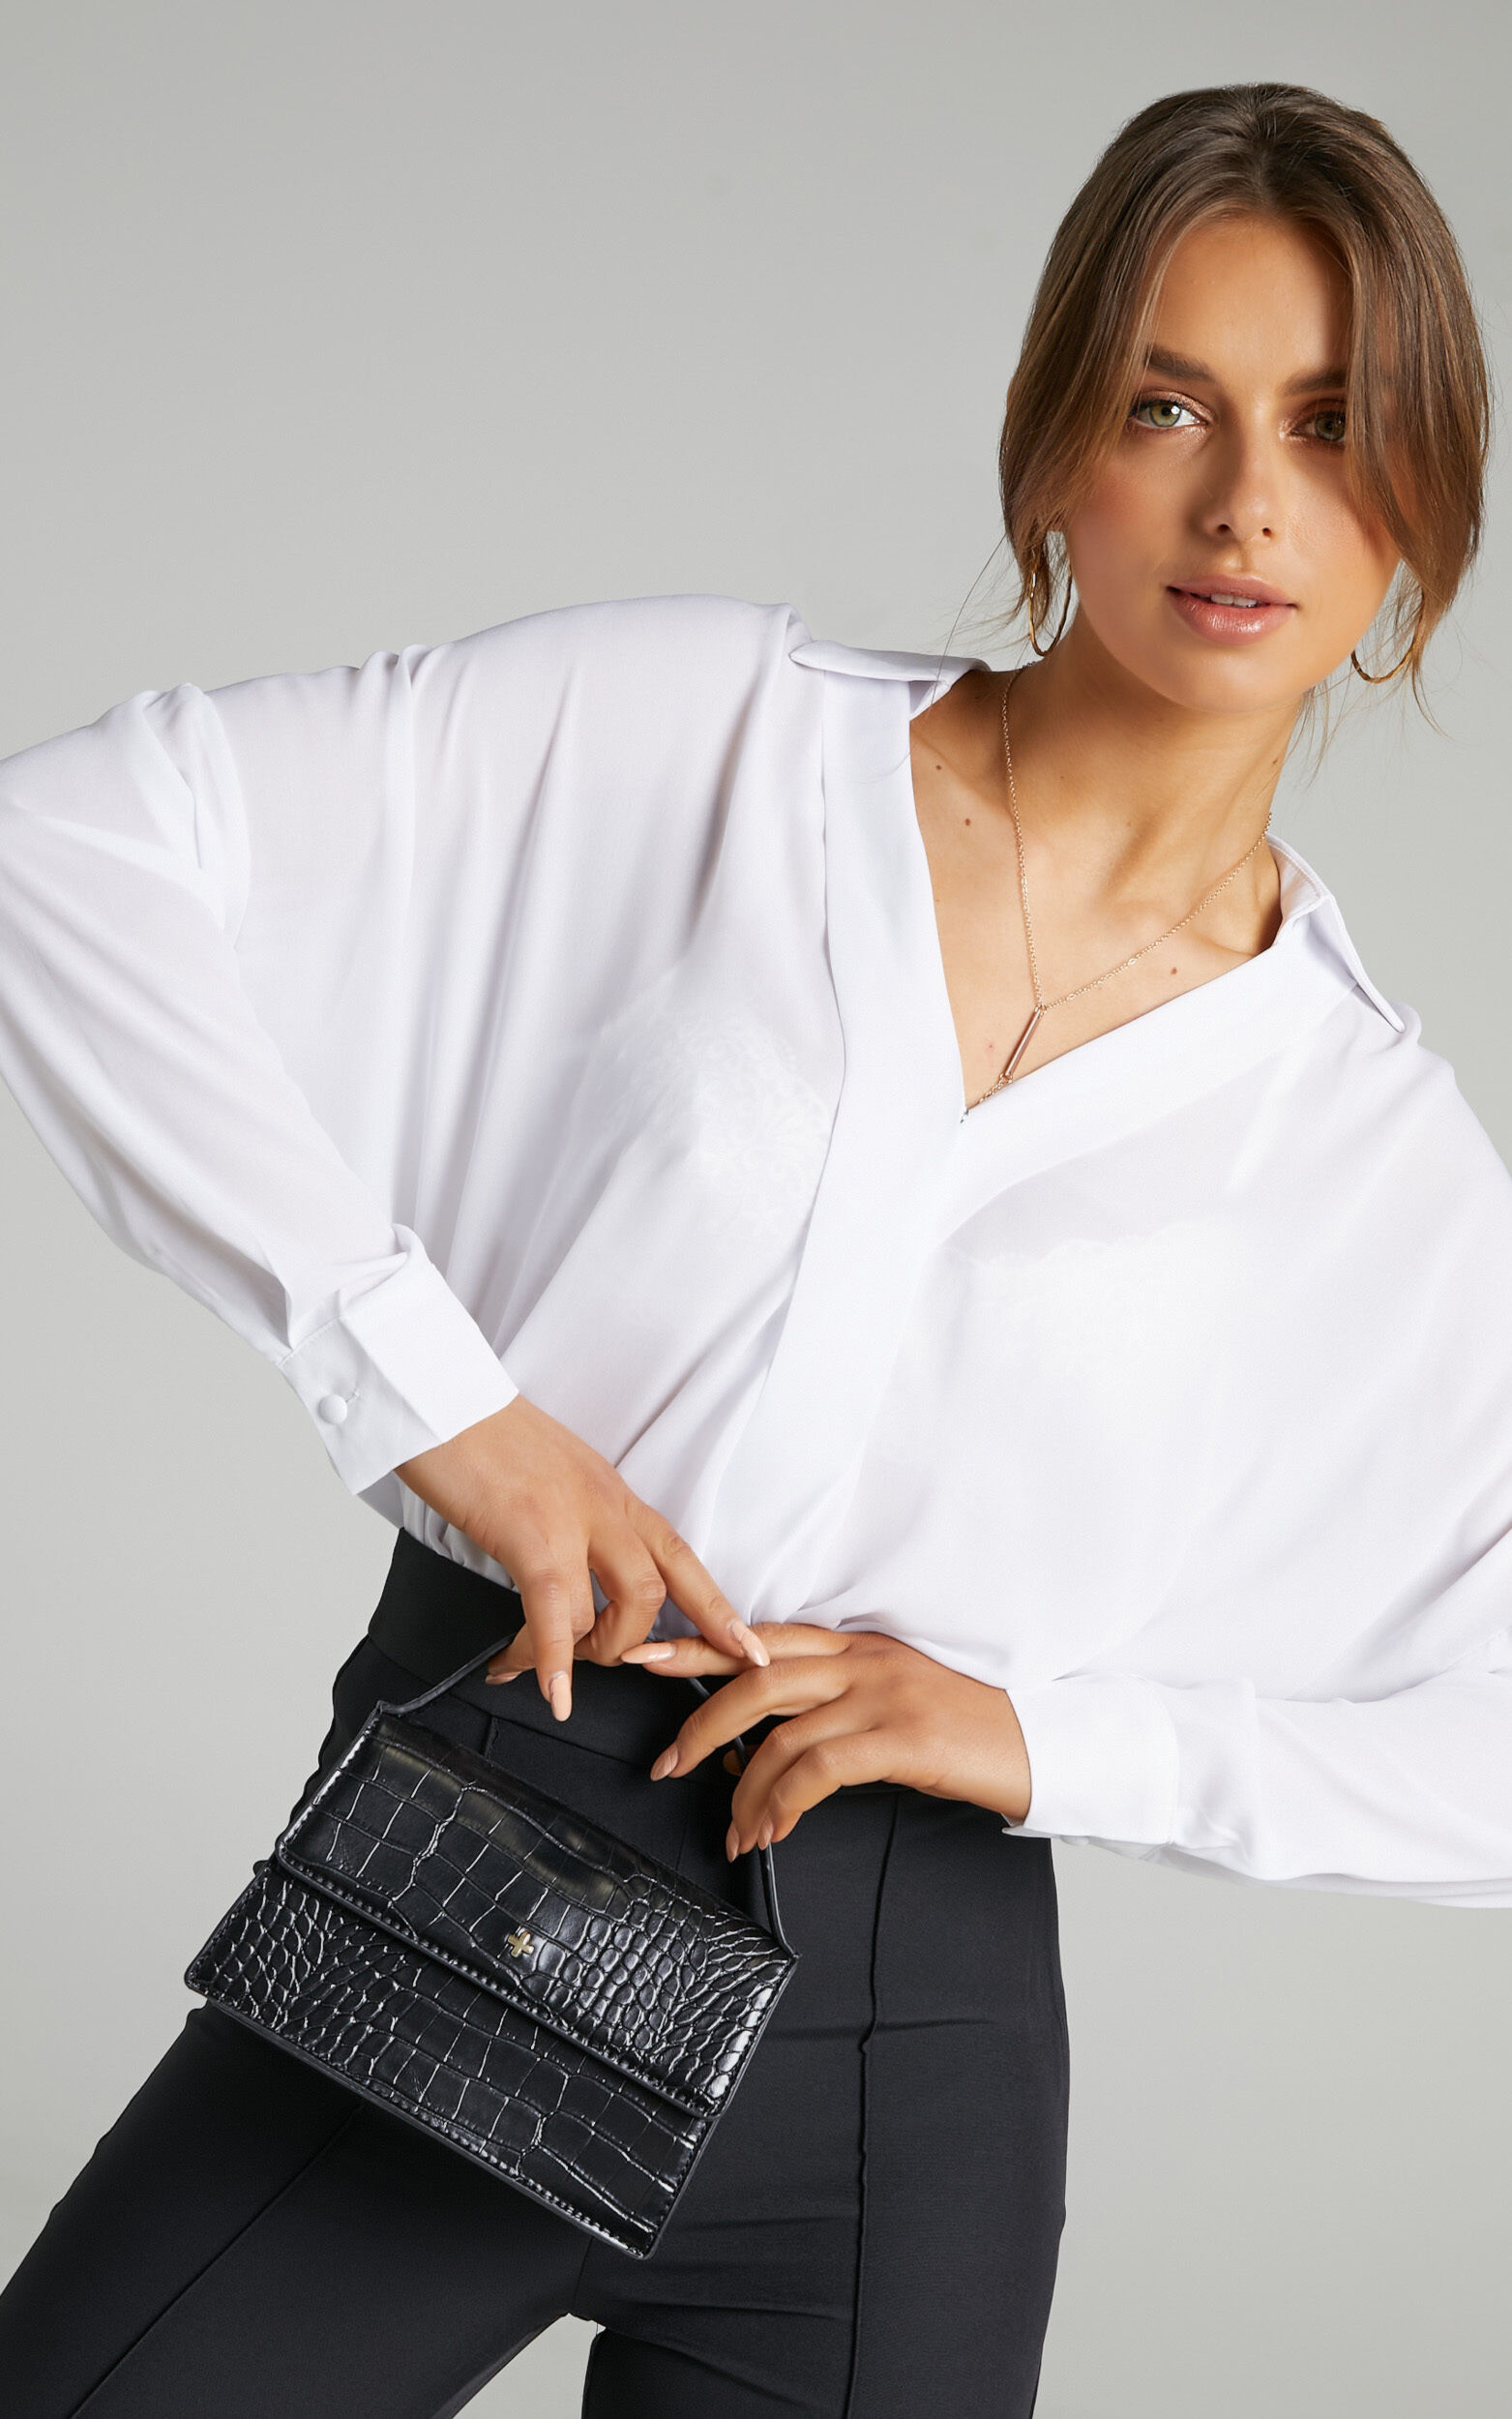 Paulie Fixed Longsleeve Wrap Shirt in White - 06, WHT1, super-hi-res image number null